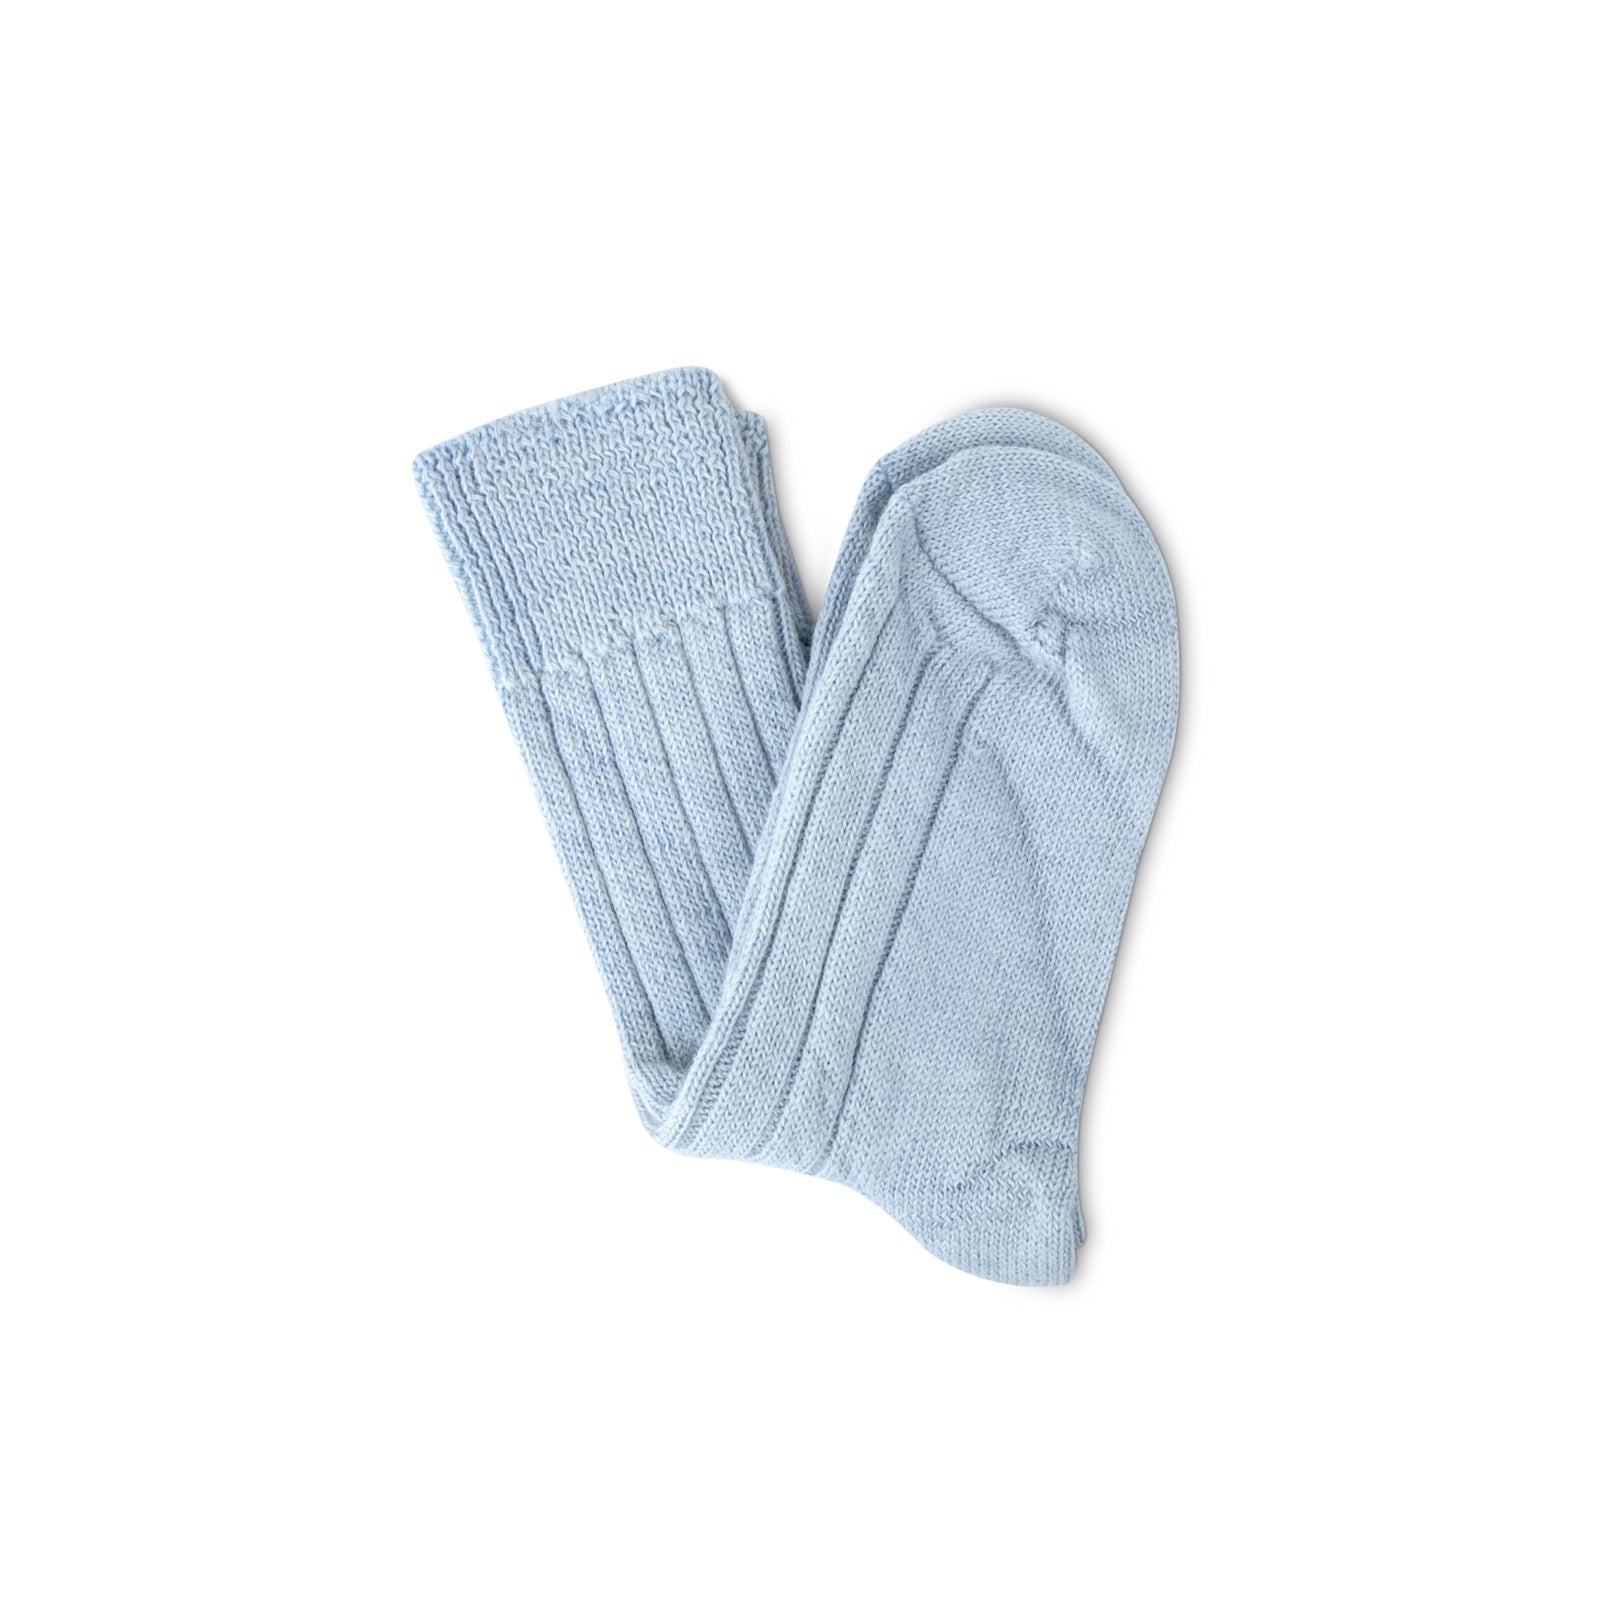 Luxury lounge socks in alpaca - Light Blue | Chaussettes Lounge en alpaga - Bleu